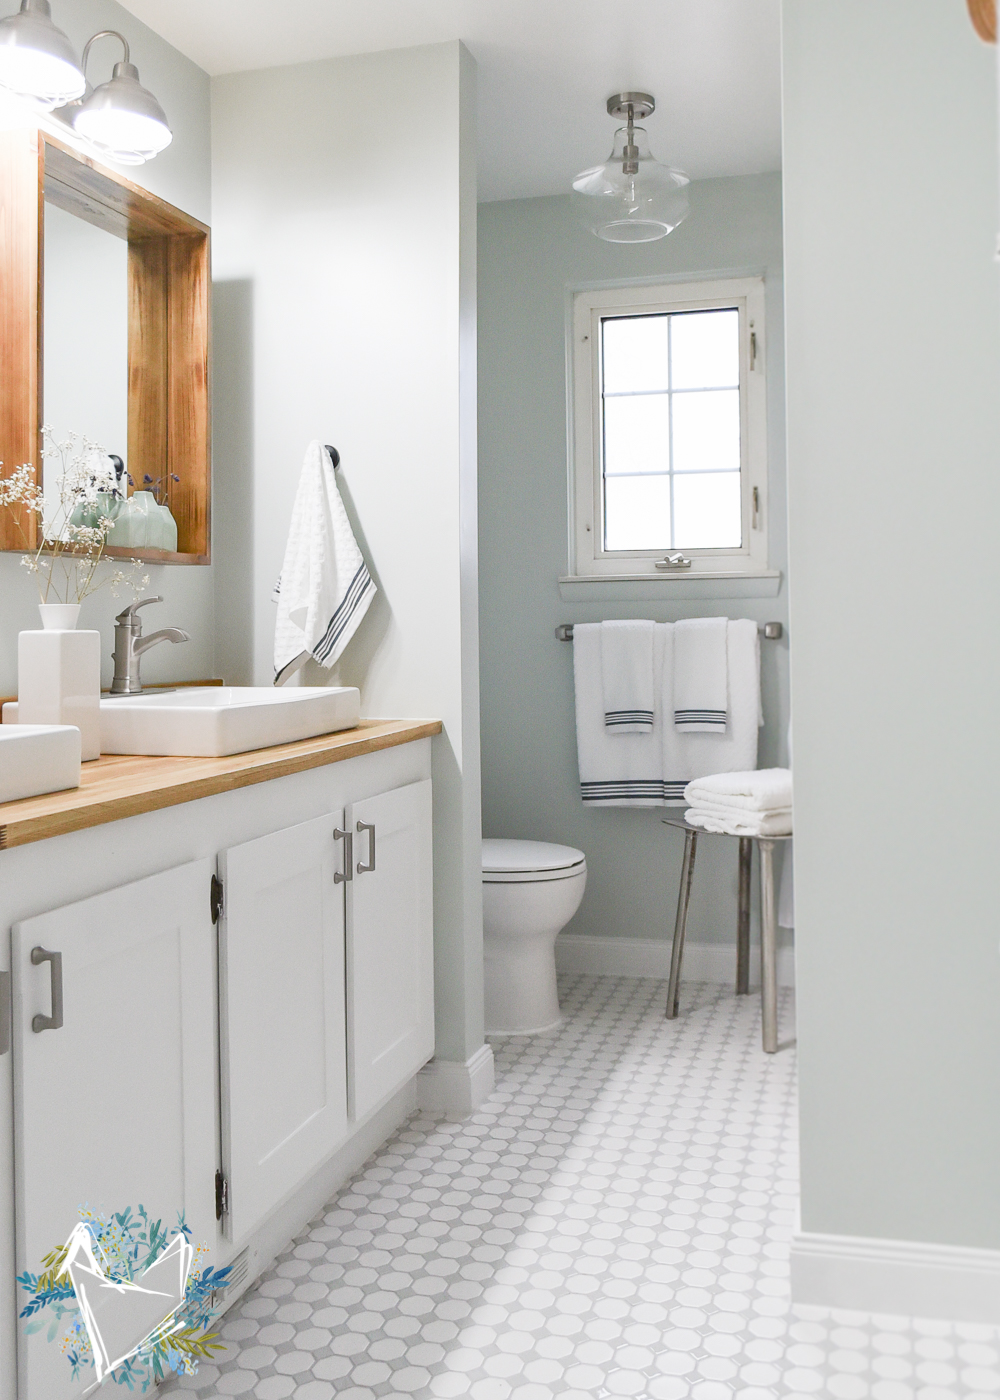 These Tips For Renovating A Bathroom Will Save You Thousands! - The ...